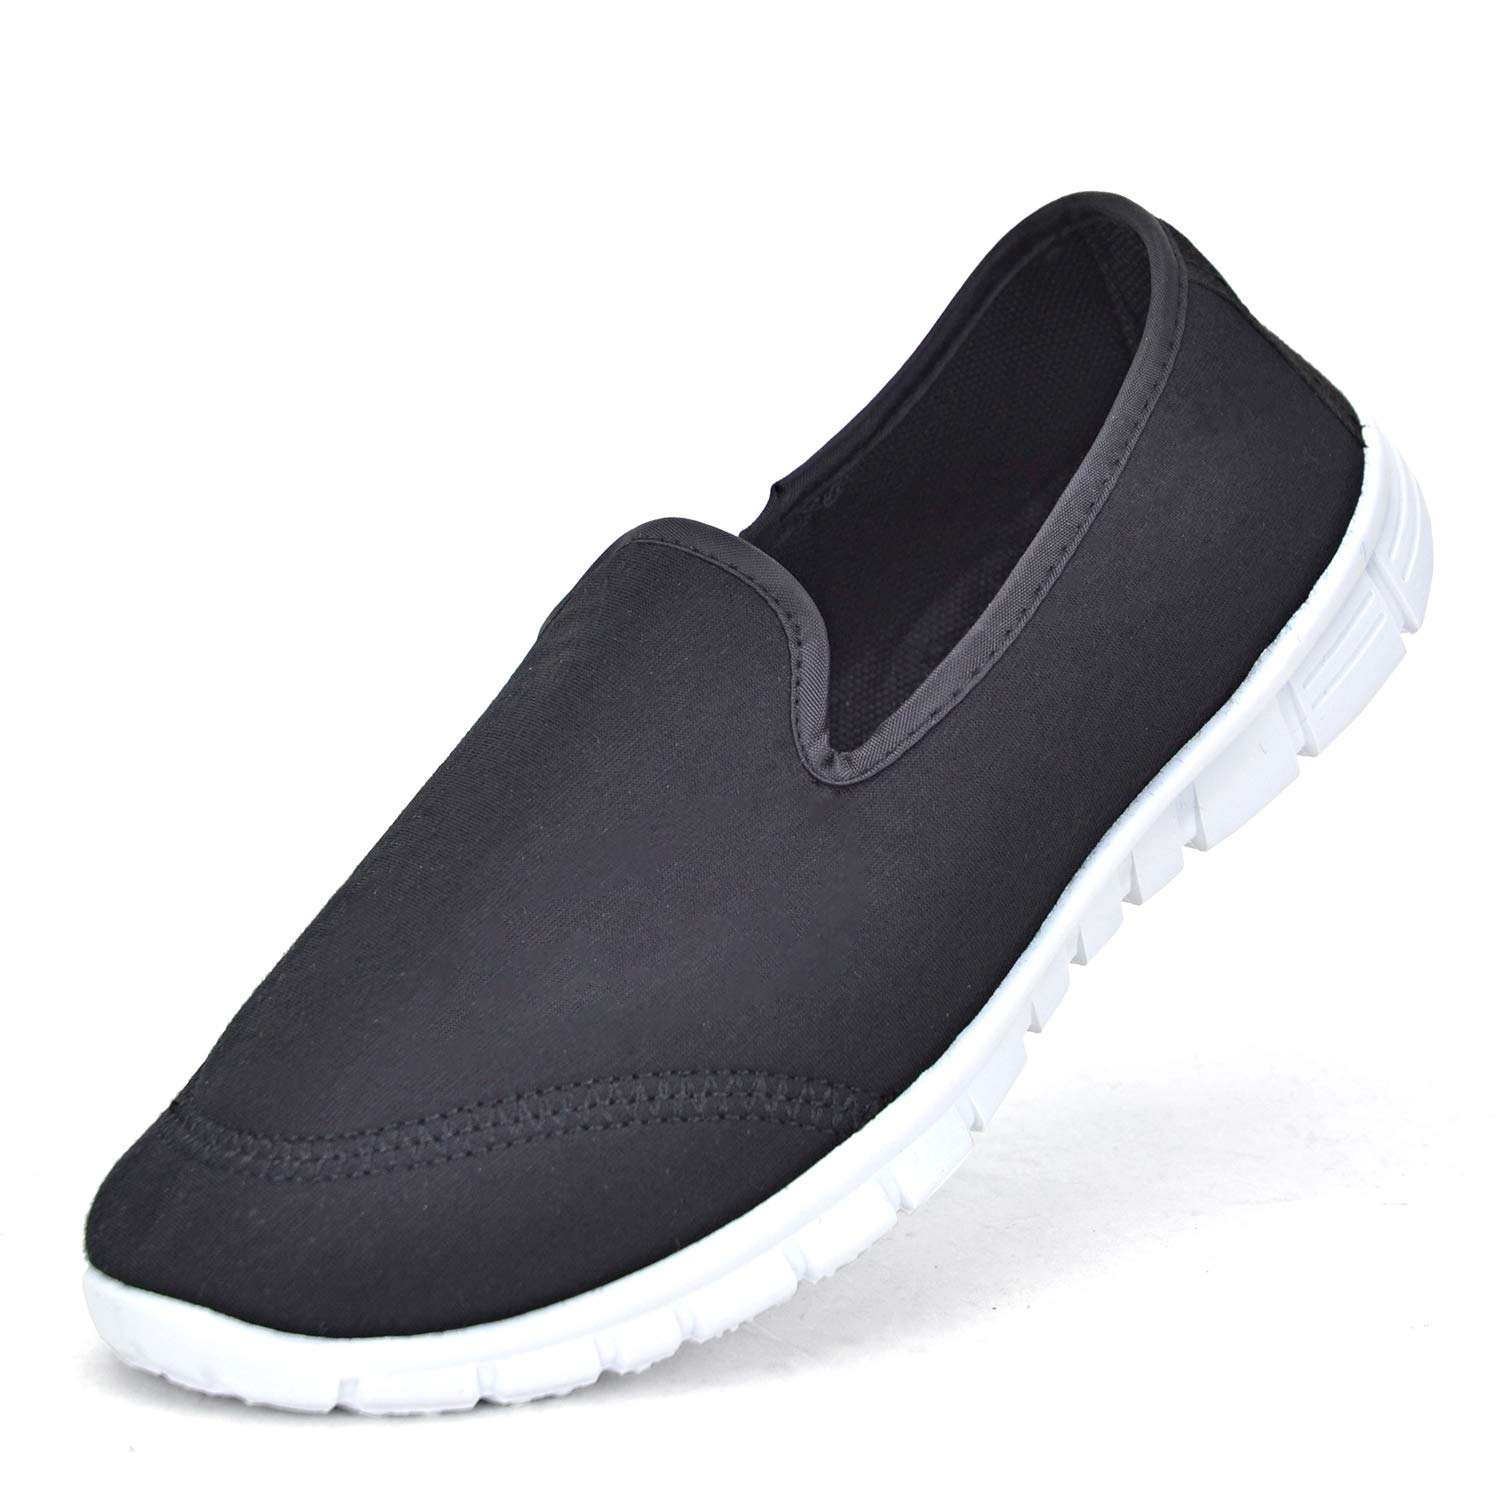 Women Slip on Sneakers Walking Shoes Lightweight Flat Ladies Casual Canvas Breathable Shoes